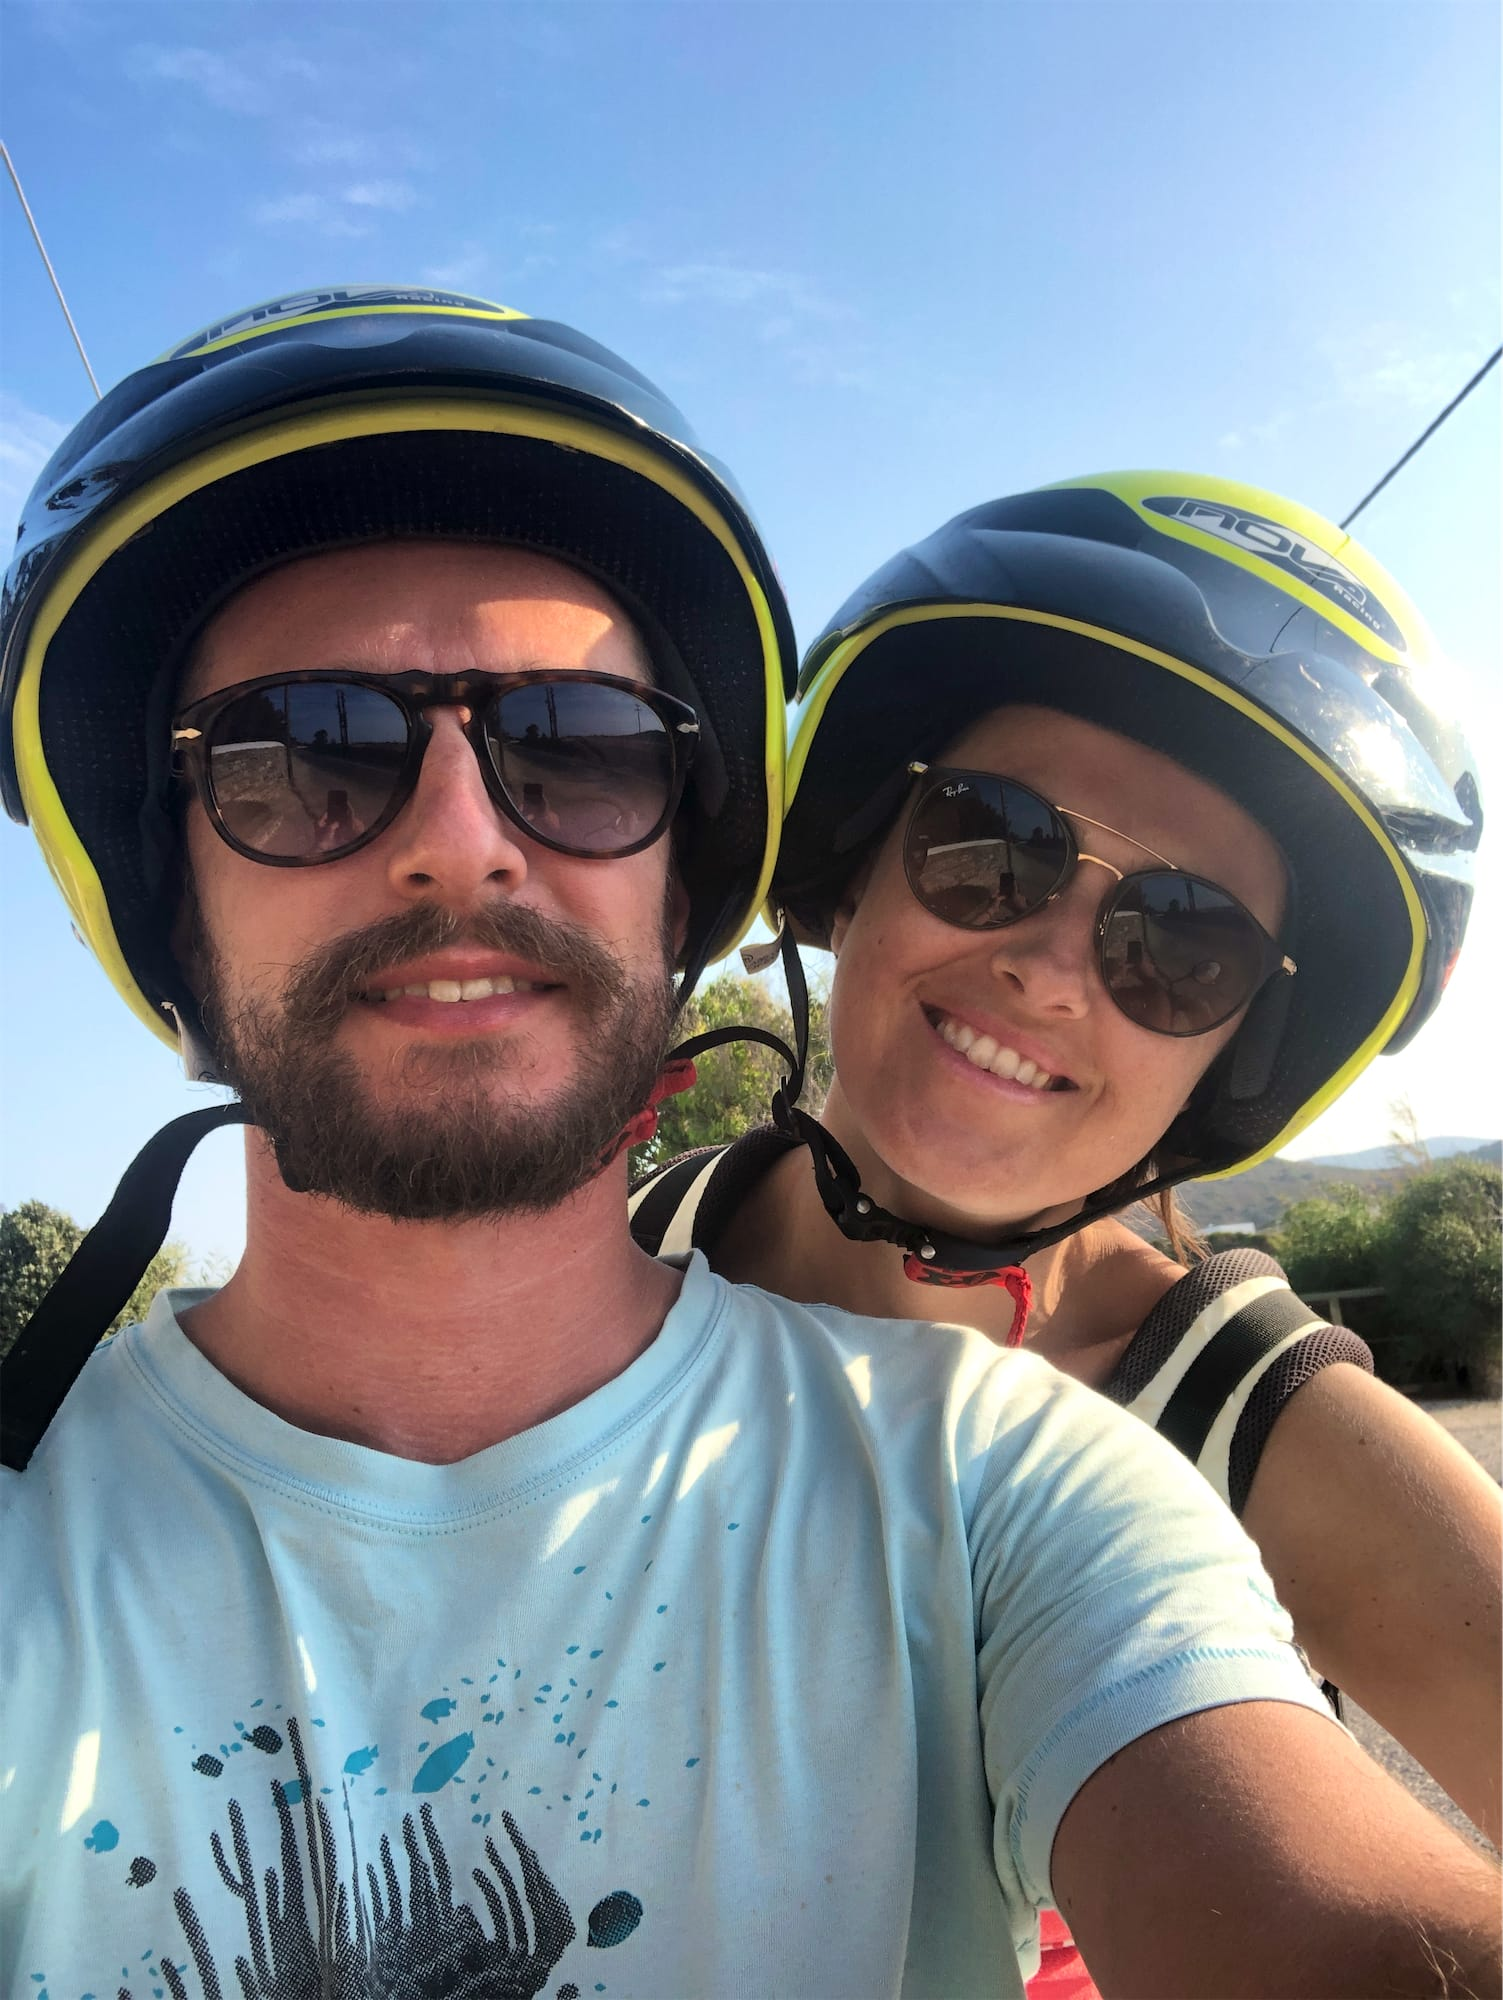 Us on our scooter